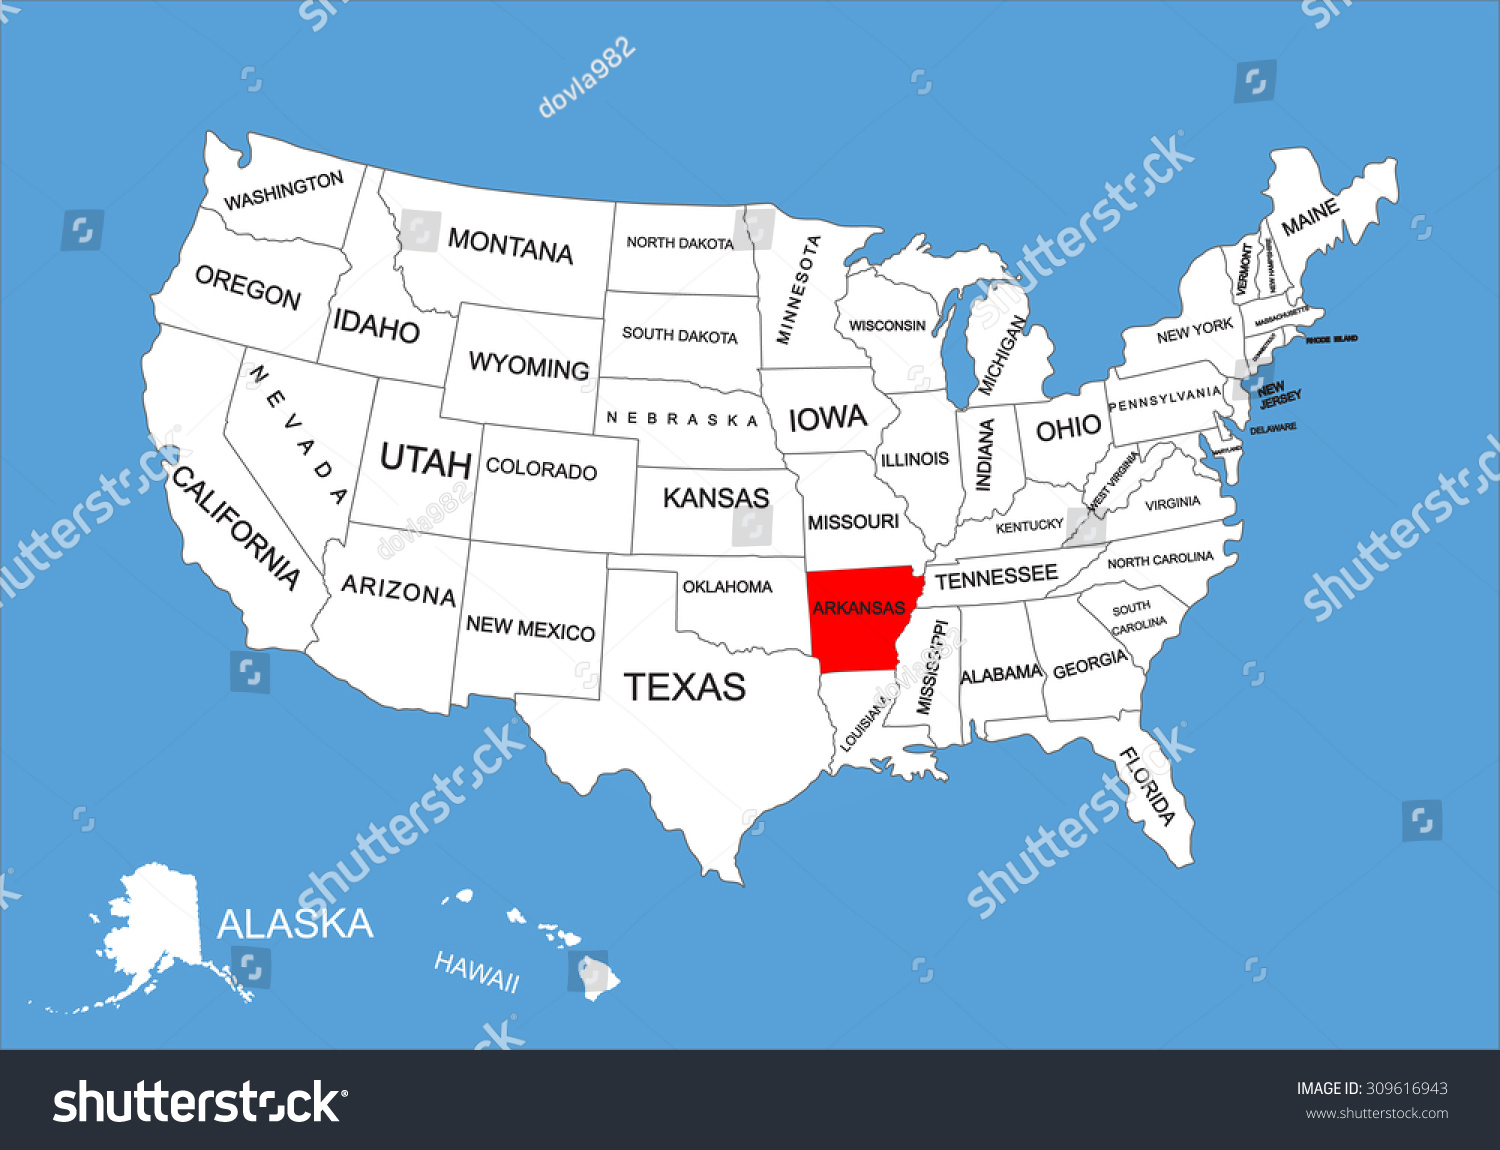 Arkansas State Usa Vector Map Isolated Stock Vector United States Map Arkansas